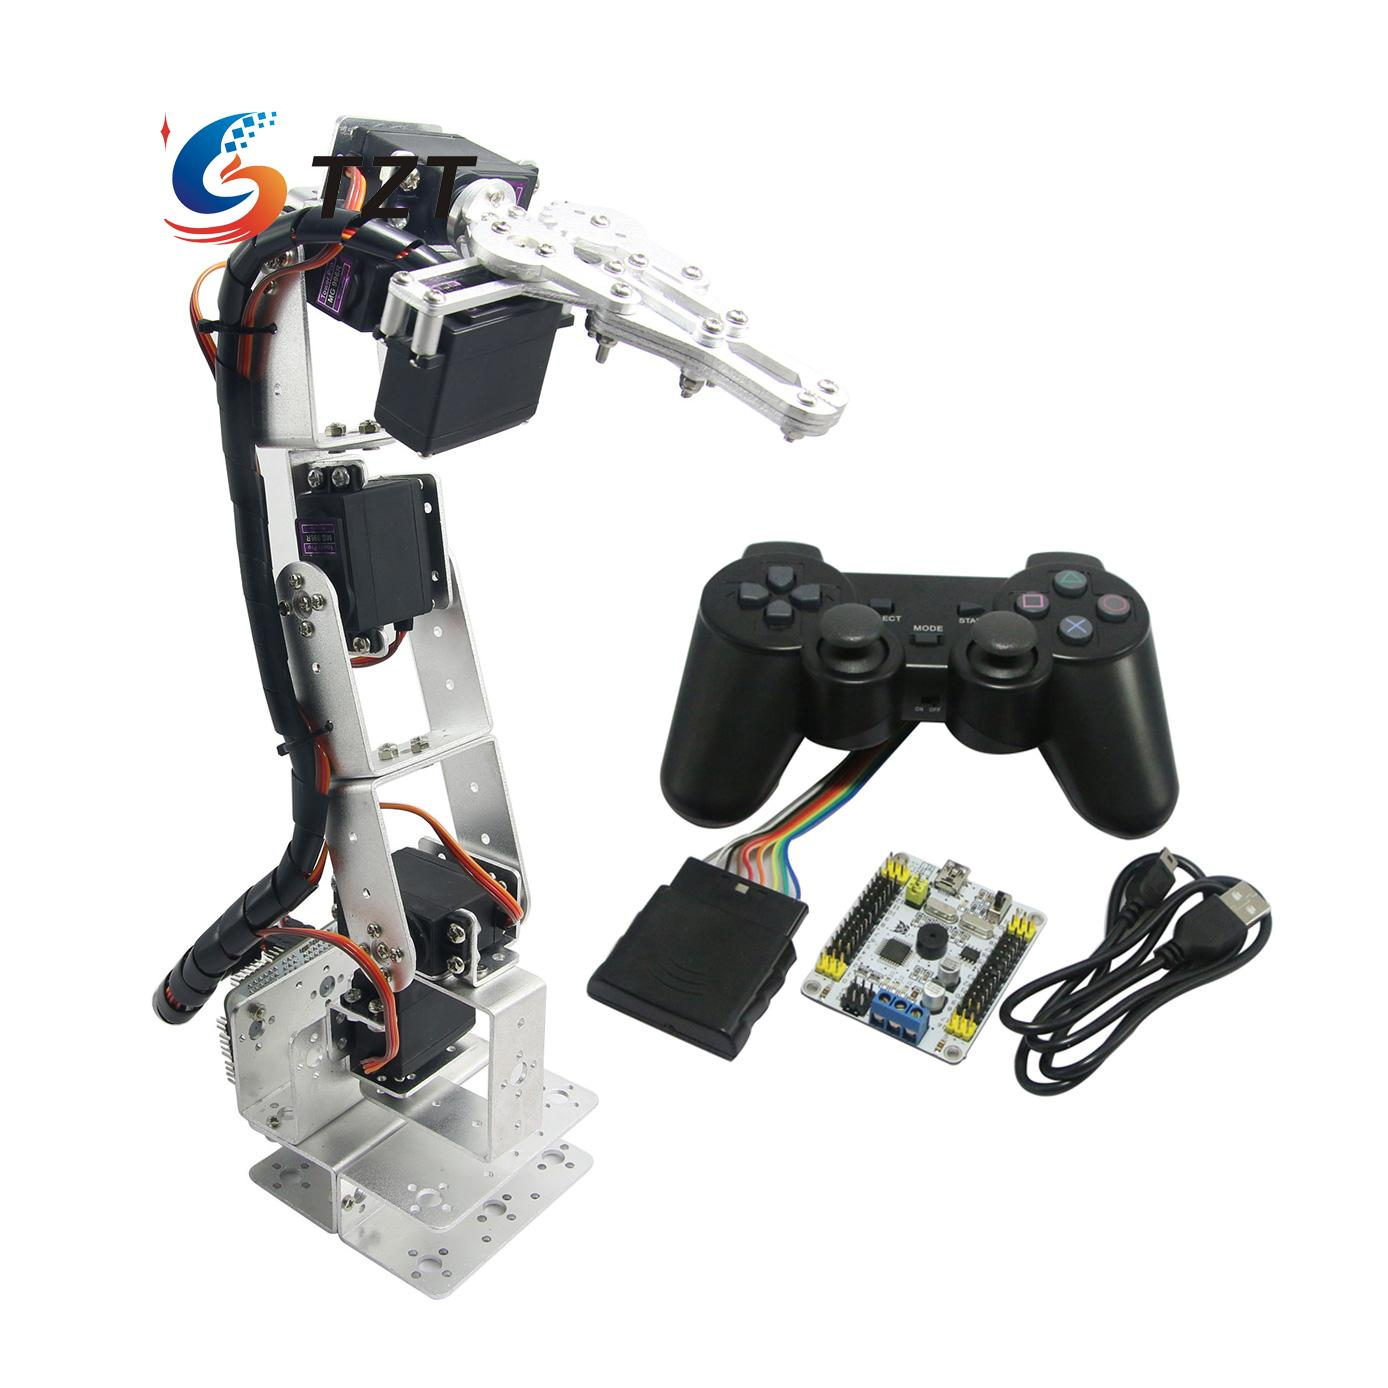 Assembled 6DOF Robot Arm Robotic Arm with Clamp Claw & LD-1501 Servos & Controller for Arduino TZT3U - Silver wirelessly synchronized robotic arm